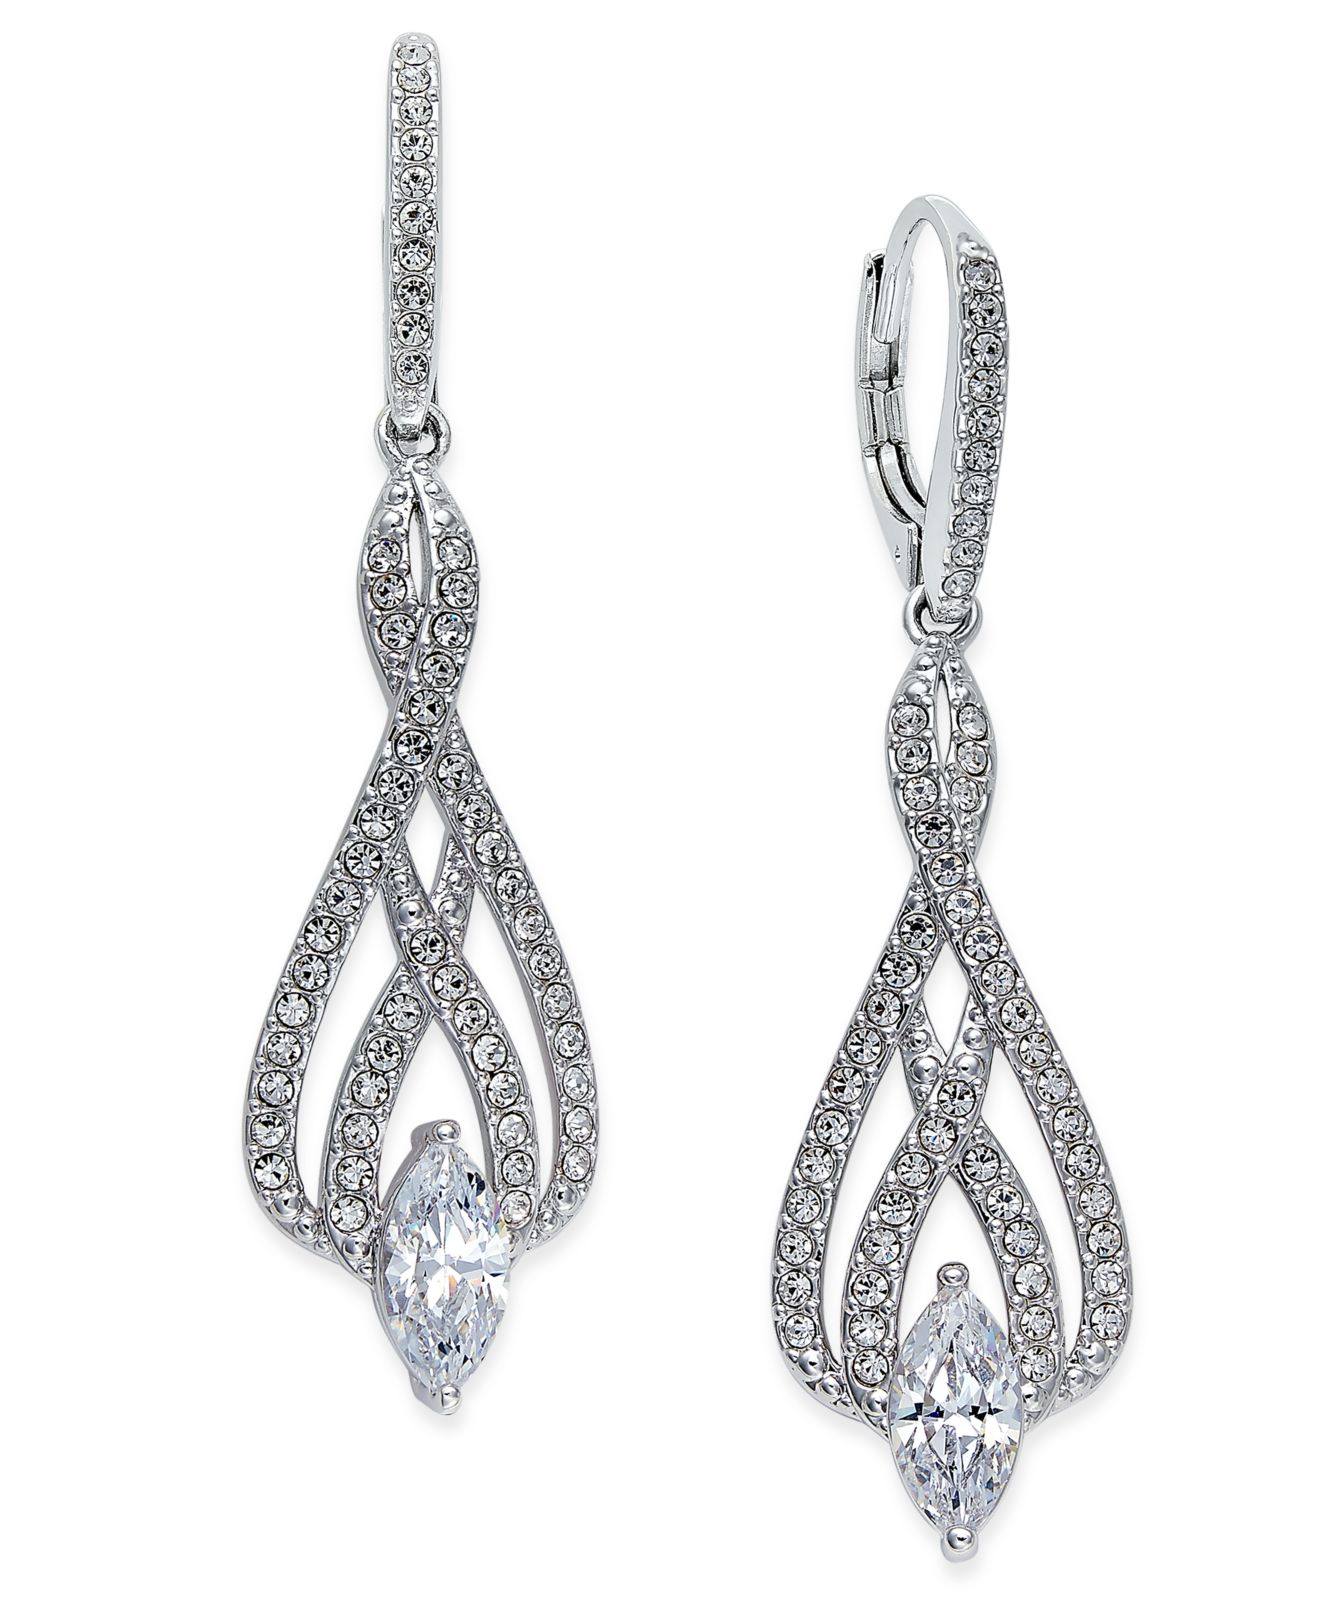 danori eliot silver tone marquise and pave drop